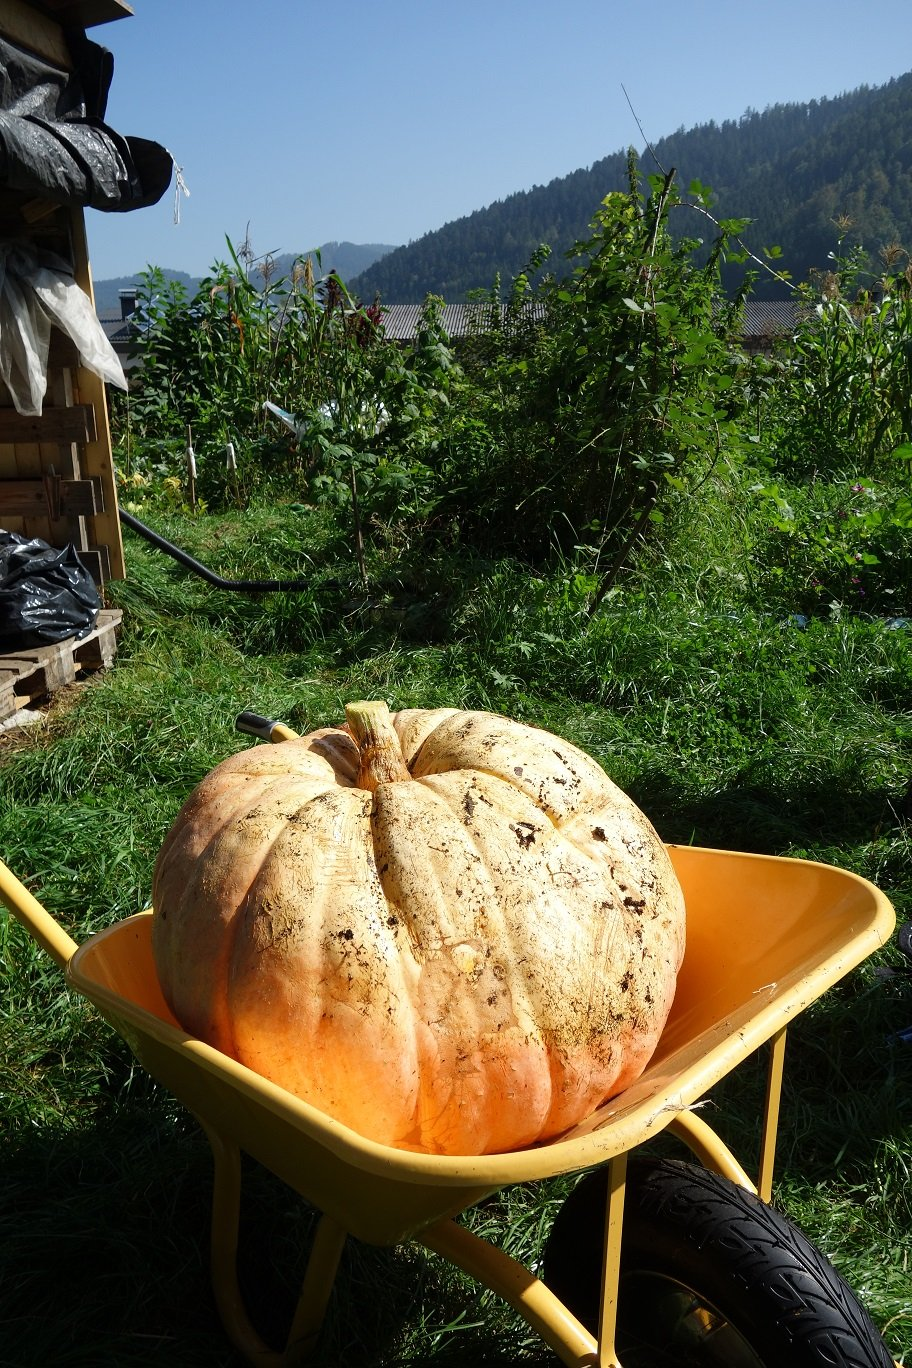 PUMPKIN 5 seeds �Giant atlantic�, world record largest,